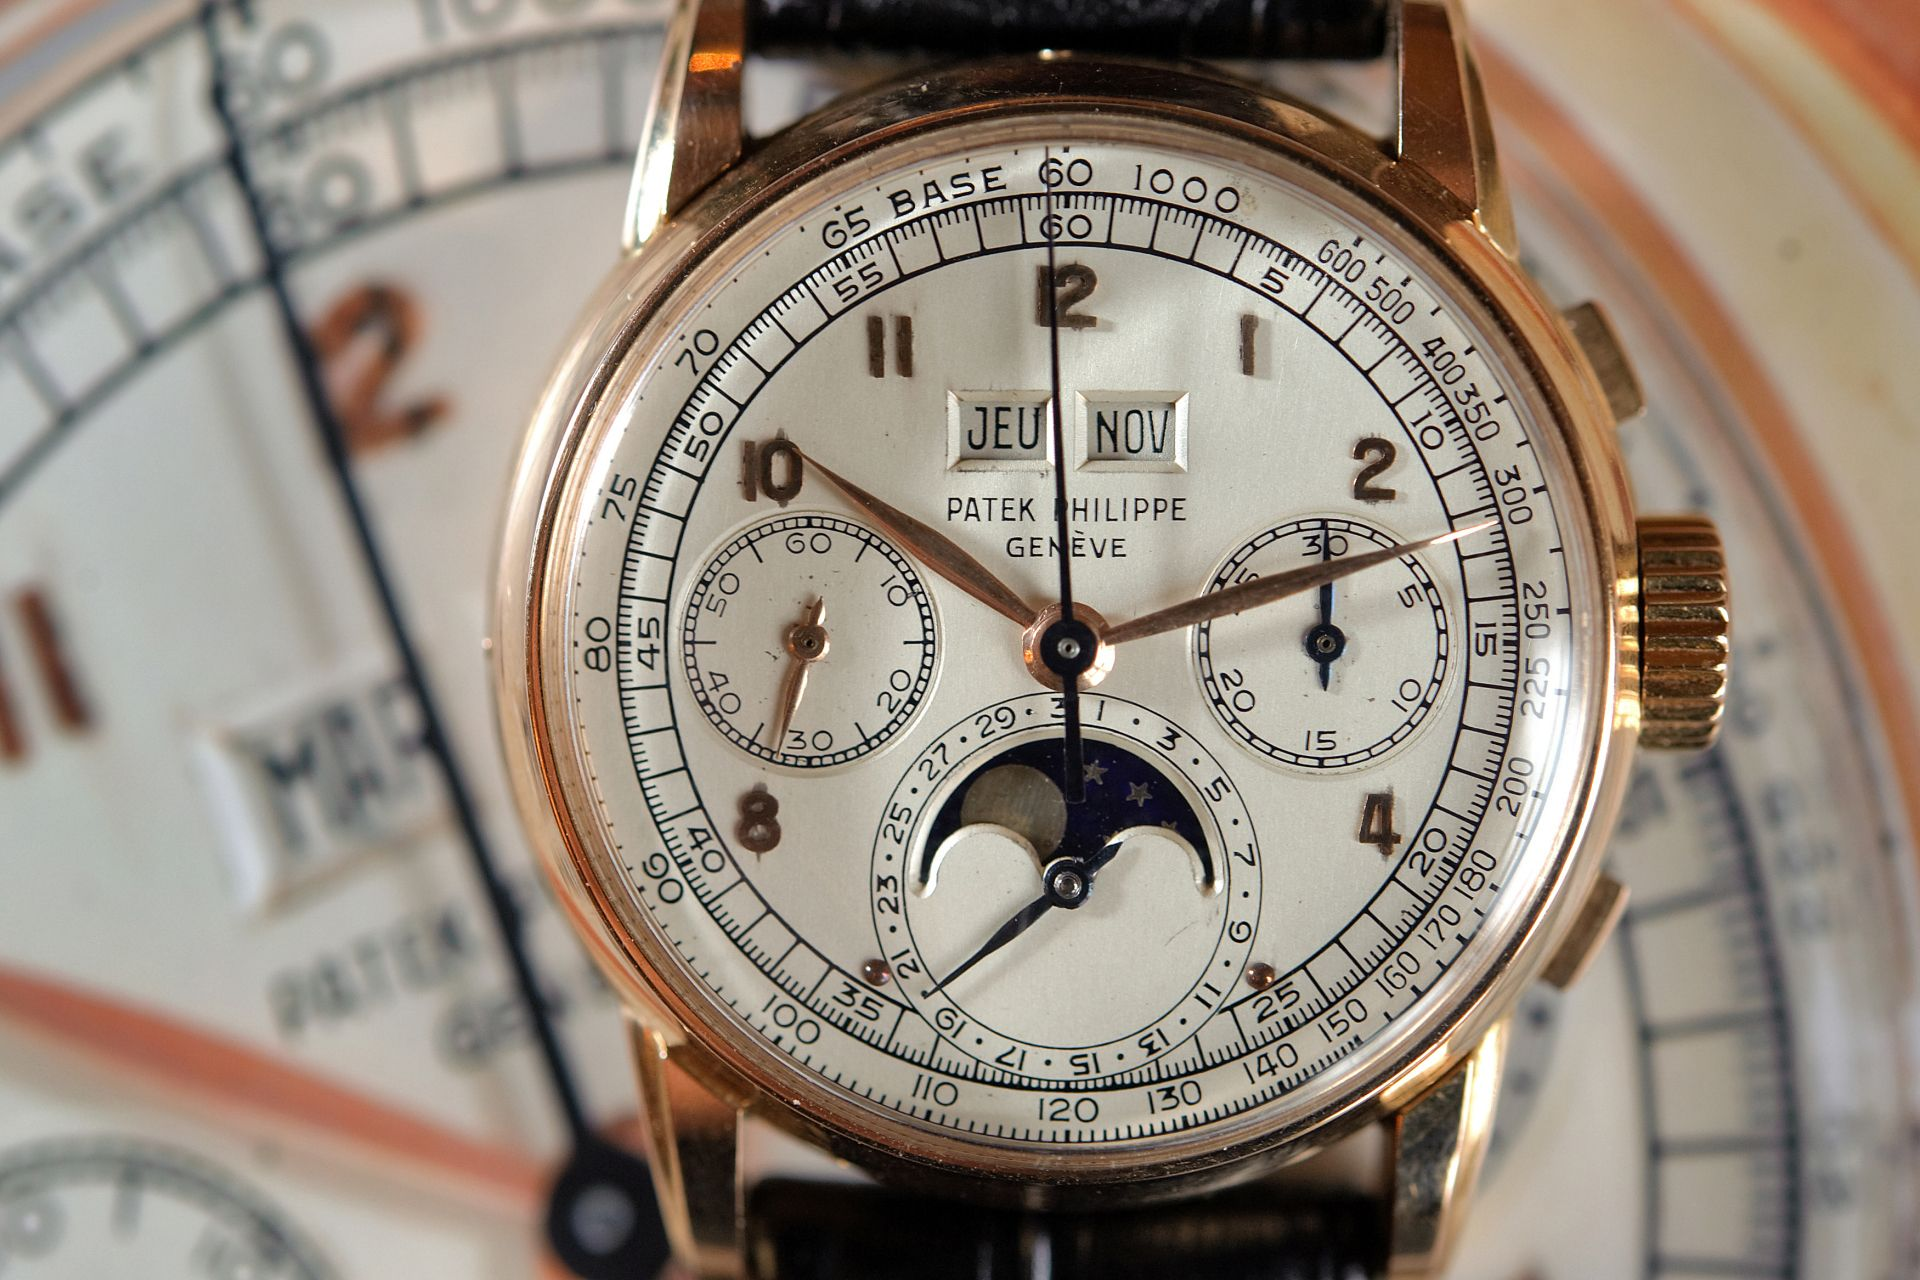 Vintage Watches Are Having A Big Moment In Asia, According To Christie's